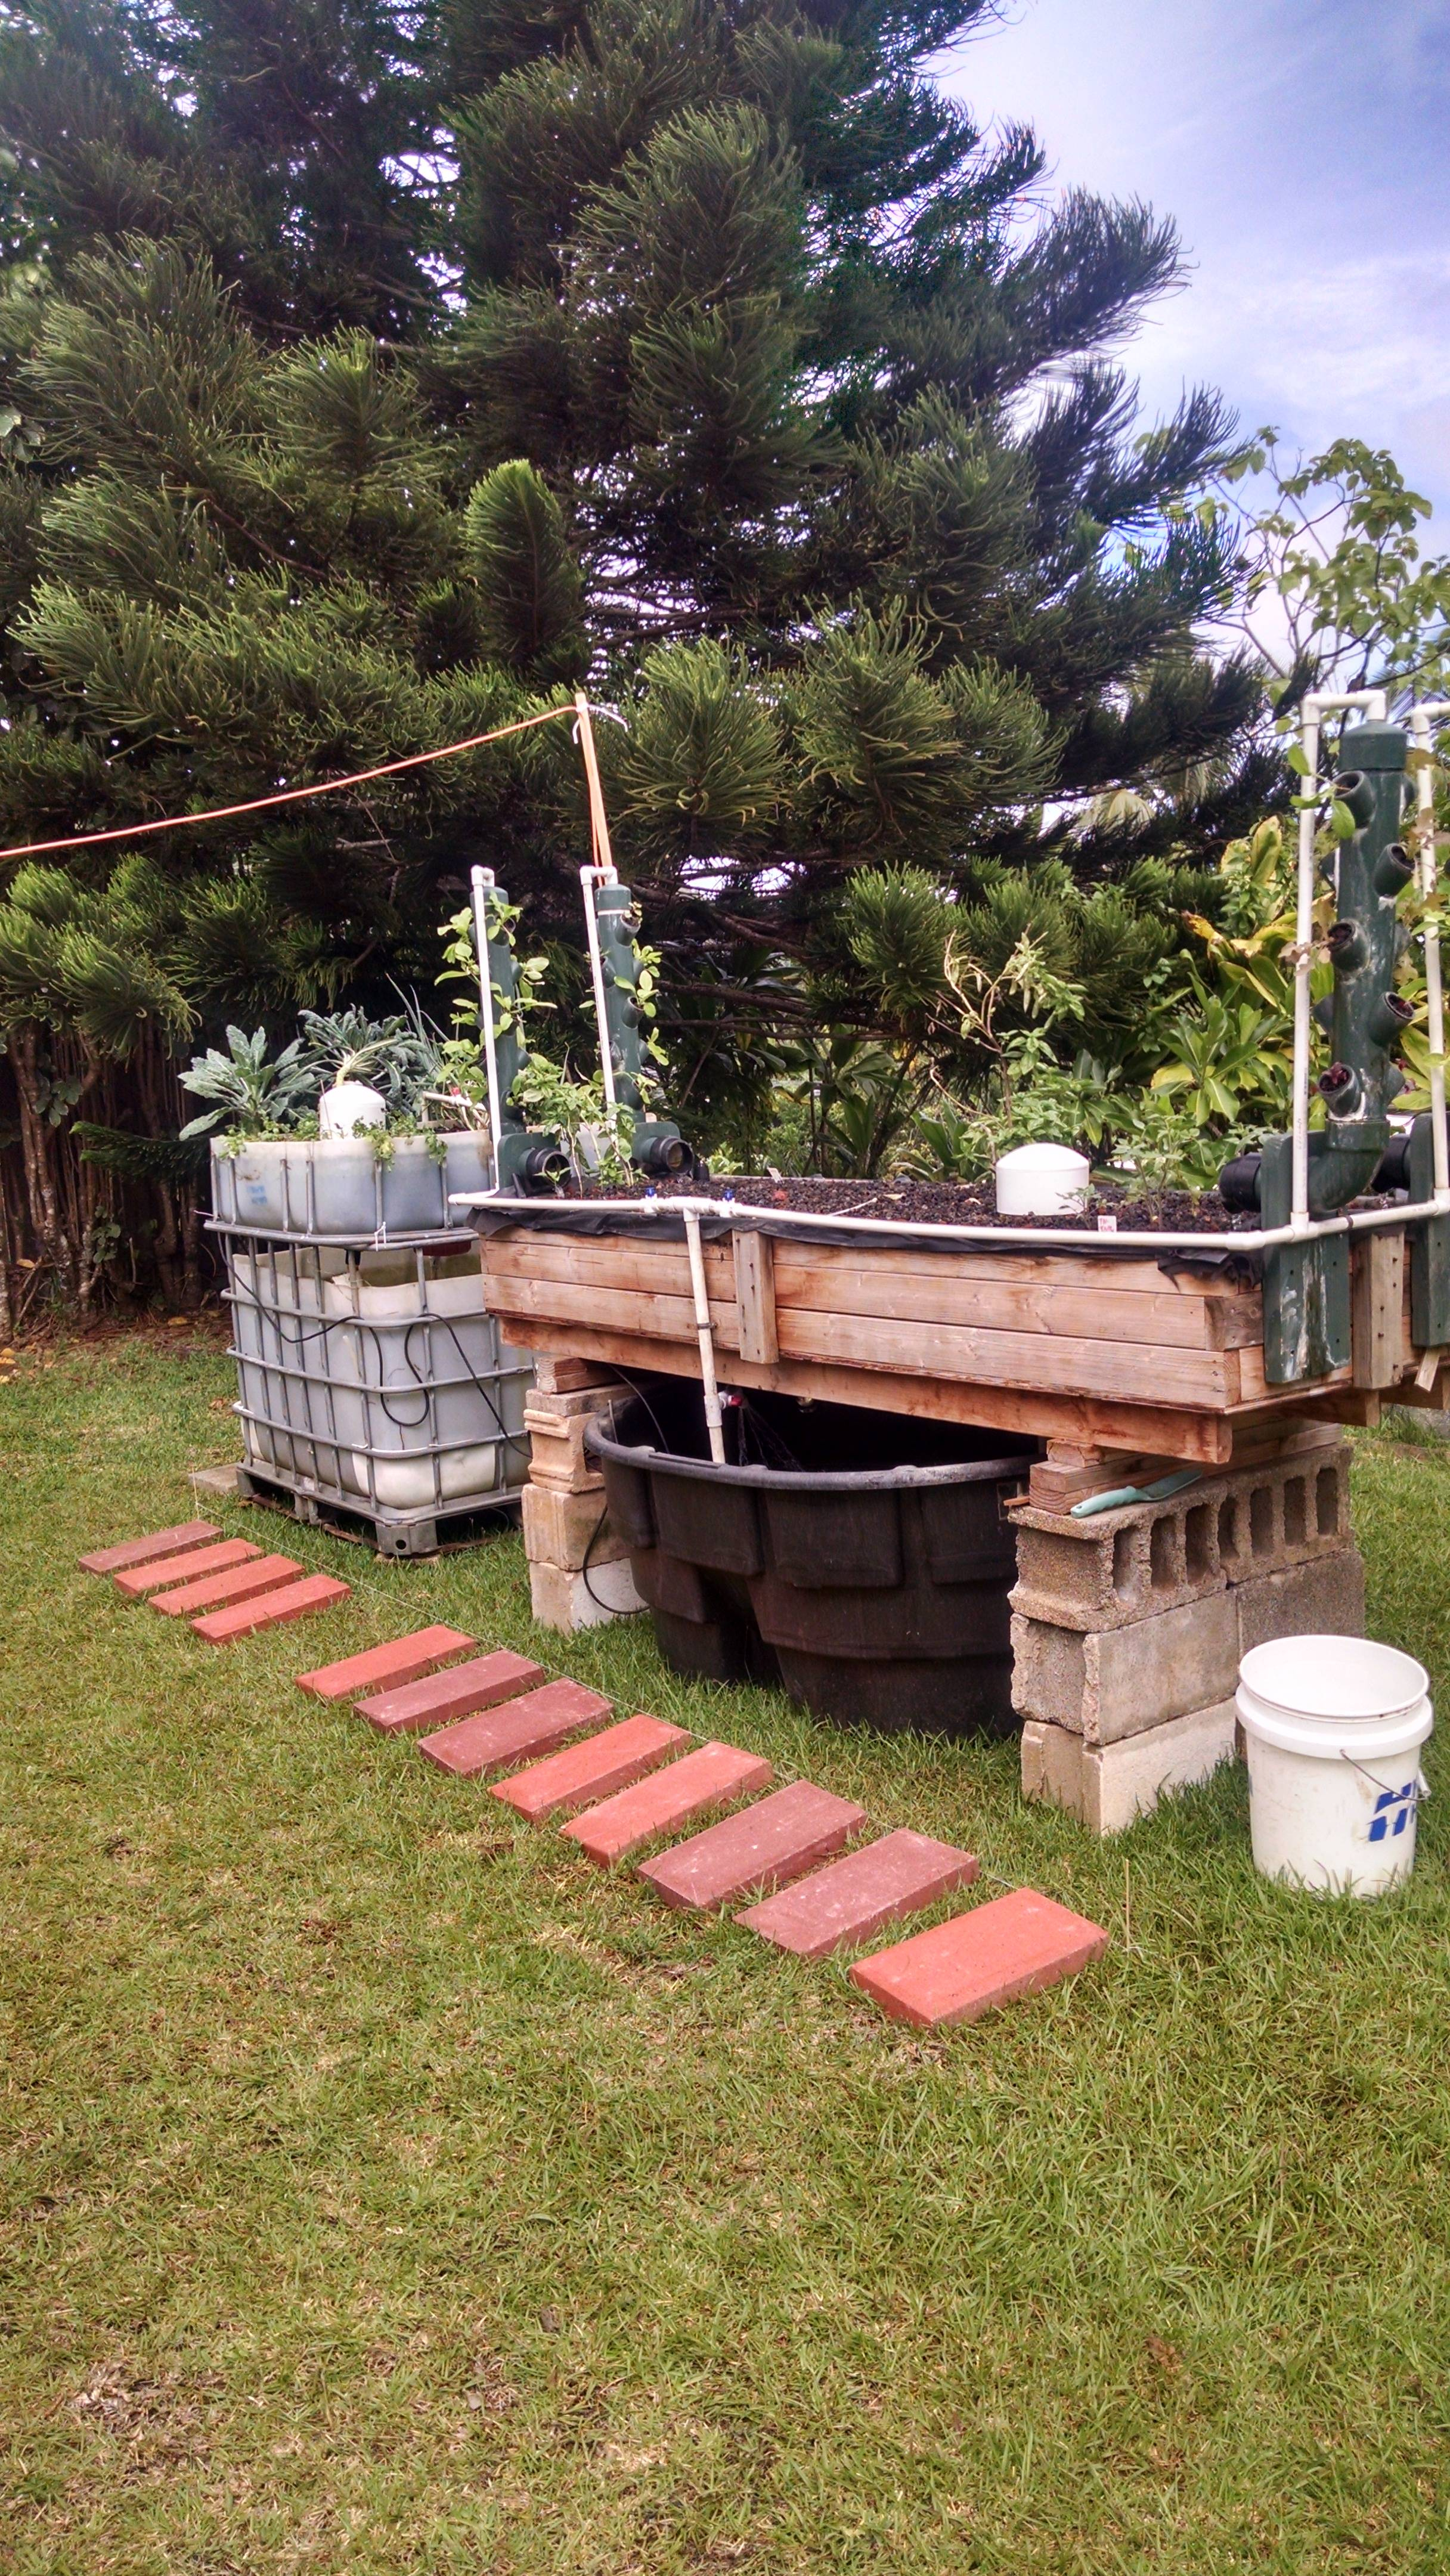 Hawaii Aquaponics system